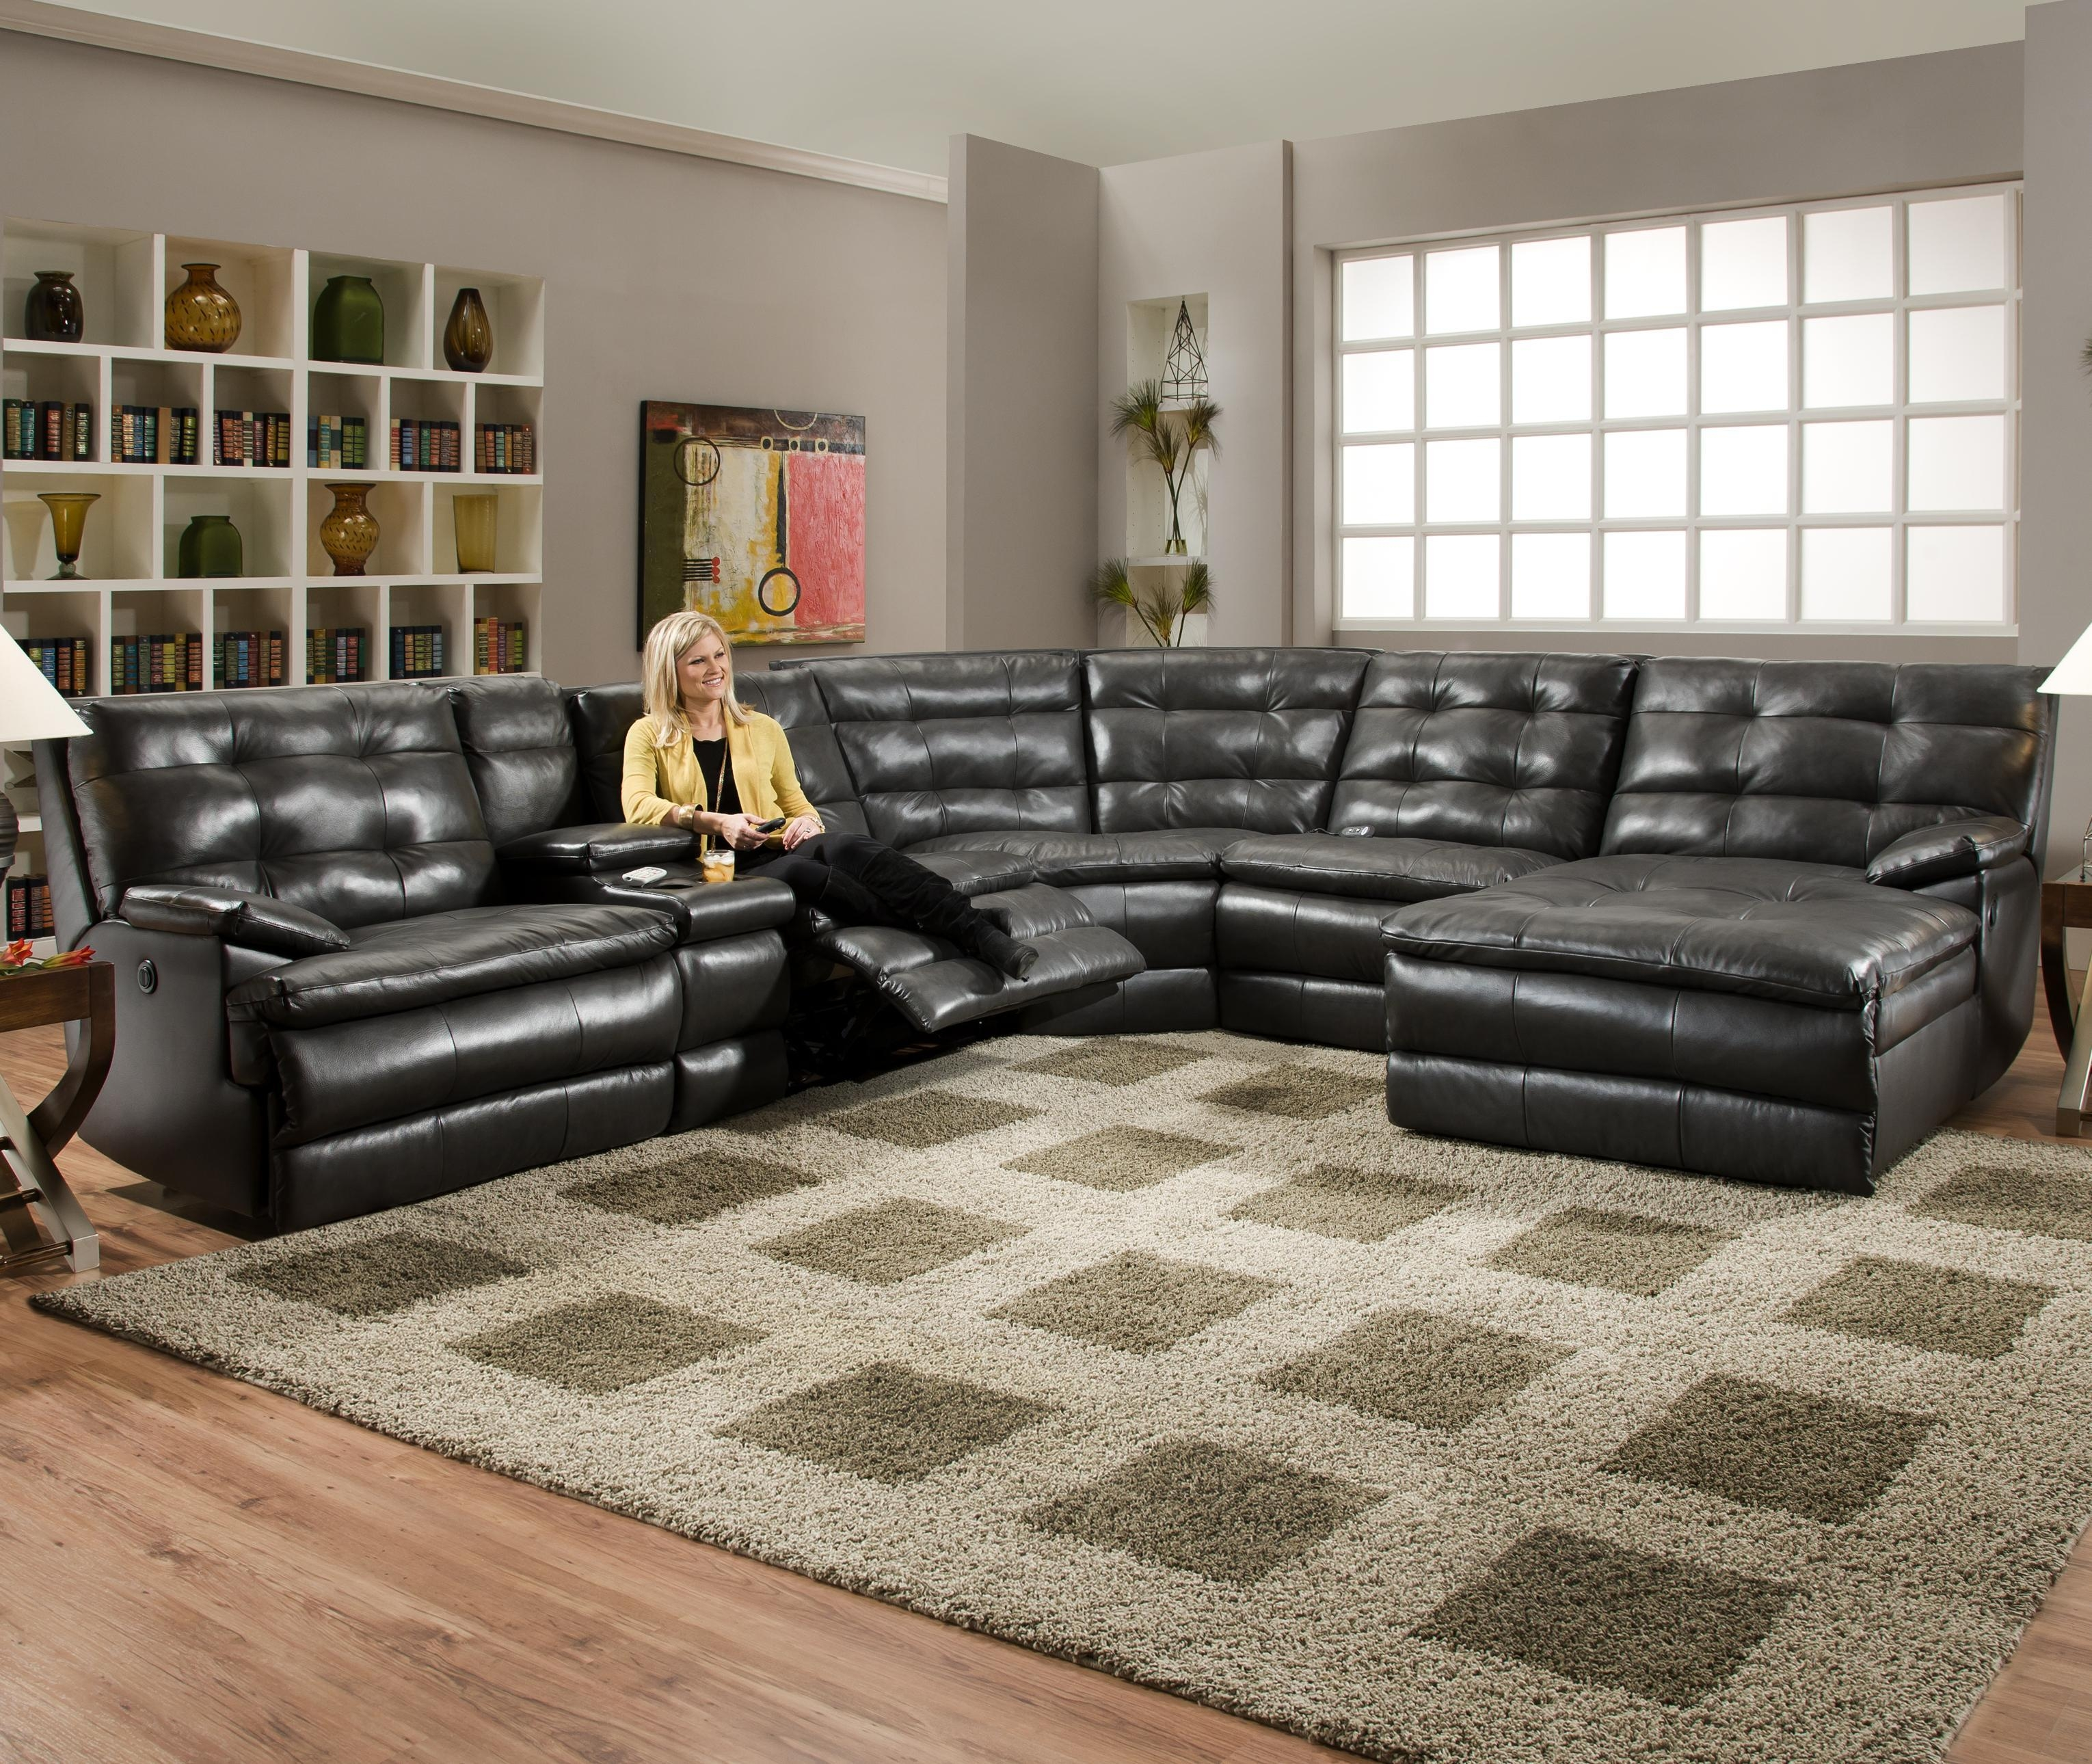 Sofas : Marvelous Reclining Sectional Wrap Around Couch Oversized Pertaining To Recliner Sectional Sofas (View 5 of 22)